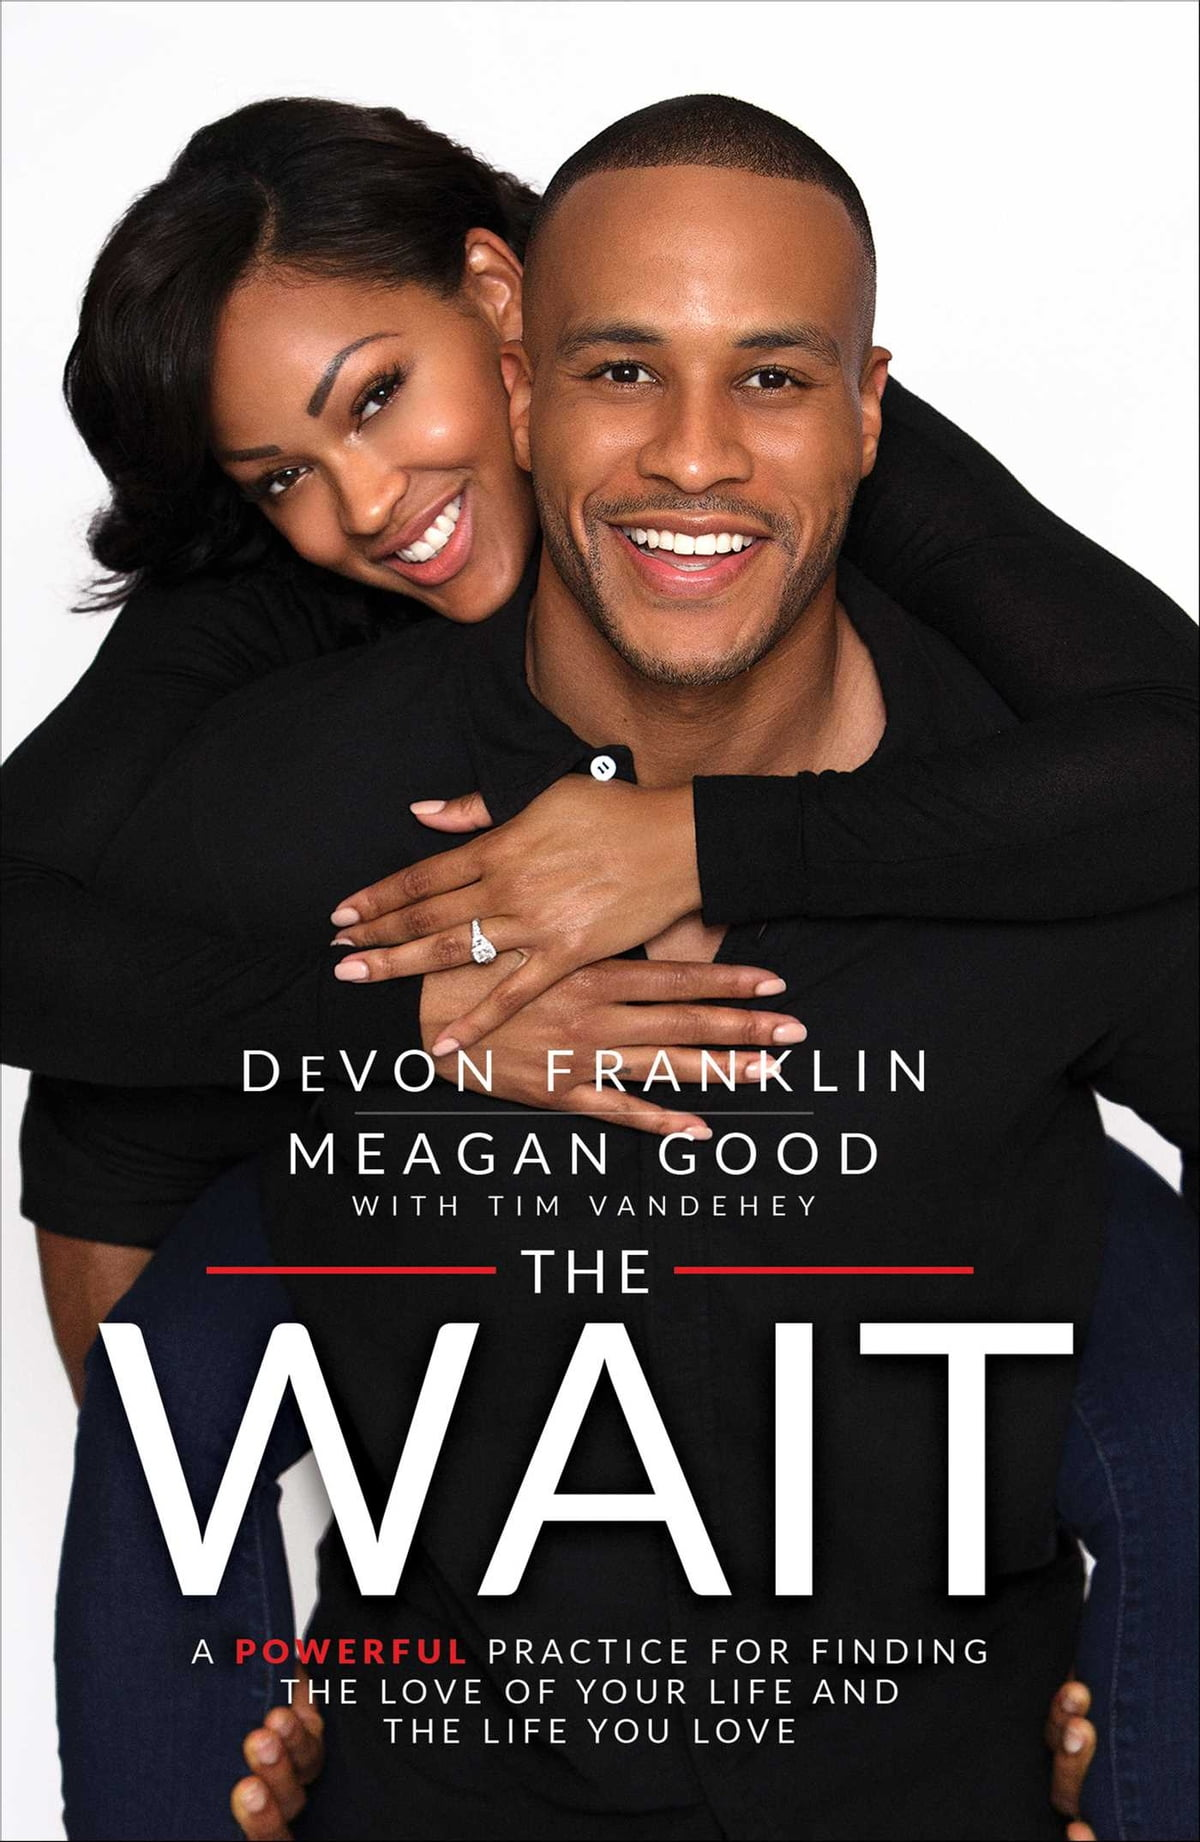 Mrs right ebook by tony a gaskins jr 9780984482252 rakuten kobo the wait a powerful practice for finding the love of your life and the life fandeluxe Document